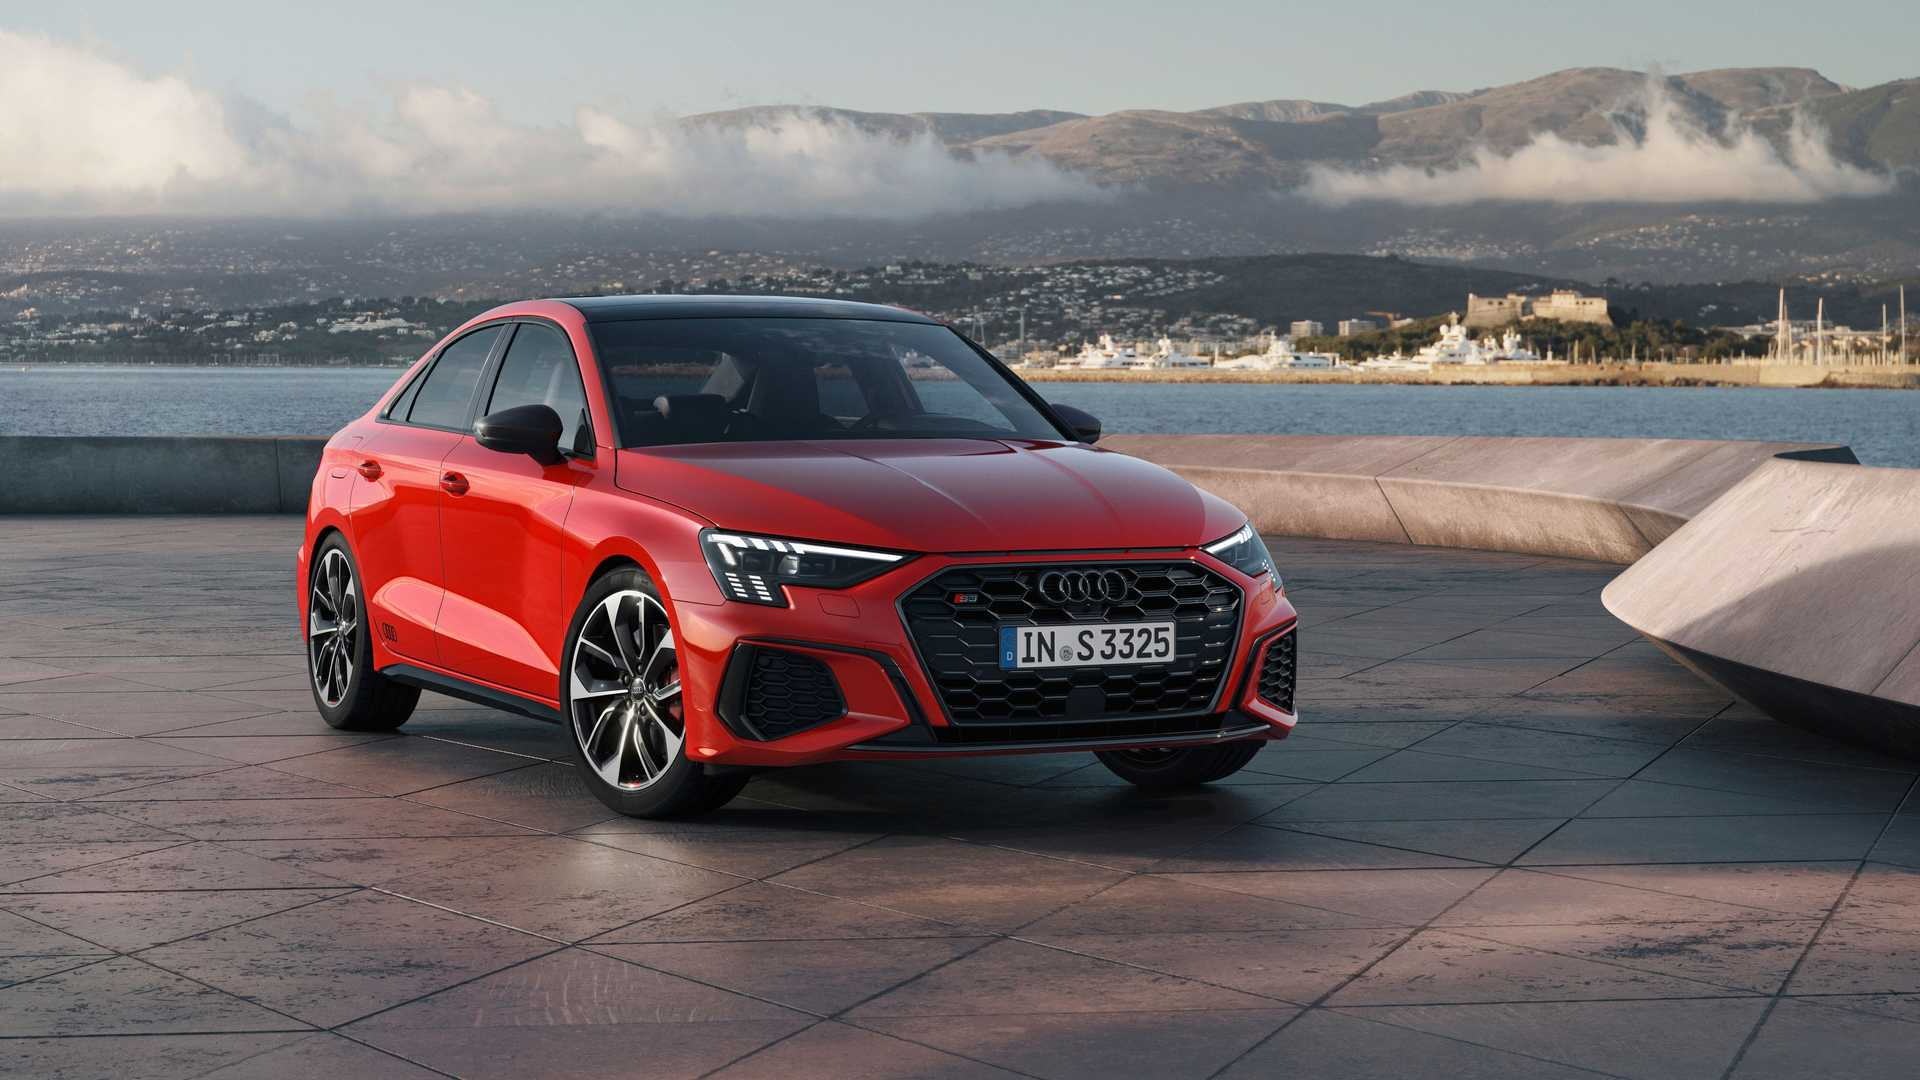 Big Things In A Small Package: The Freshened Audi A3 Brings More Power and More Value